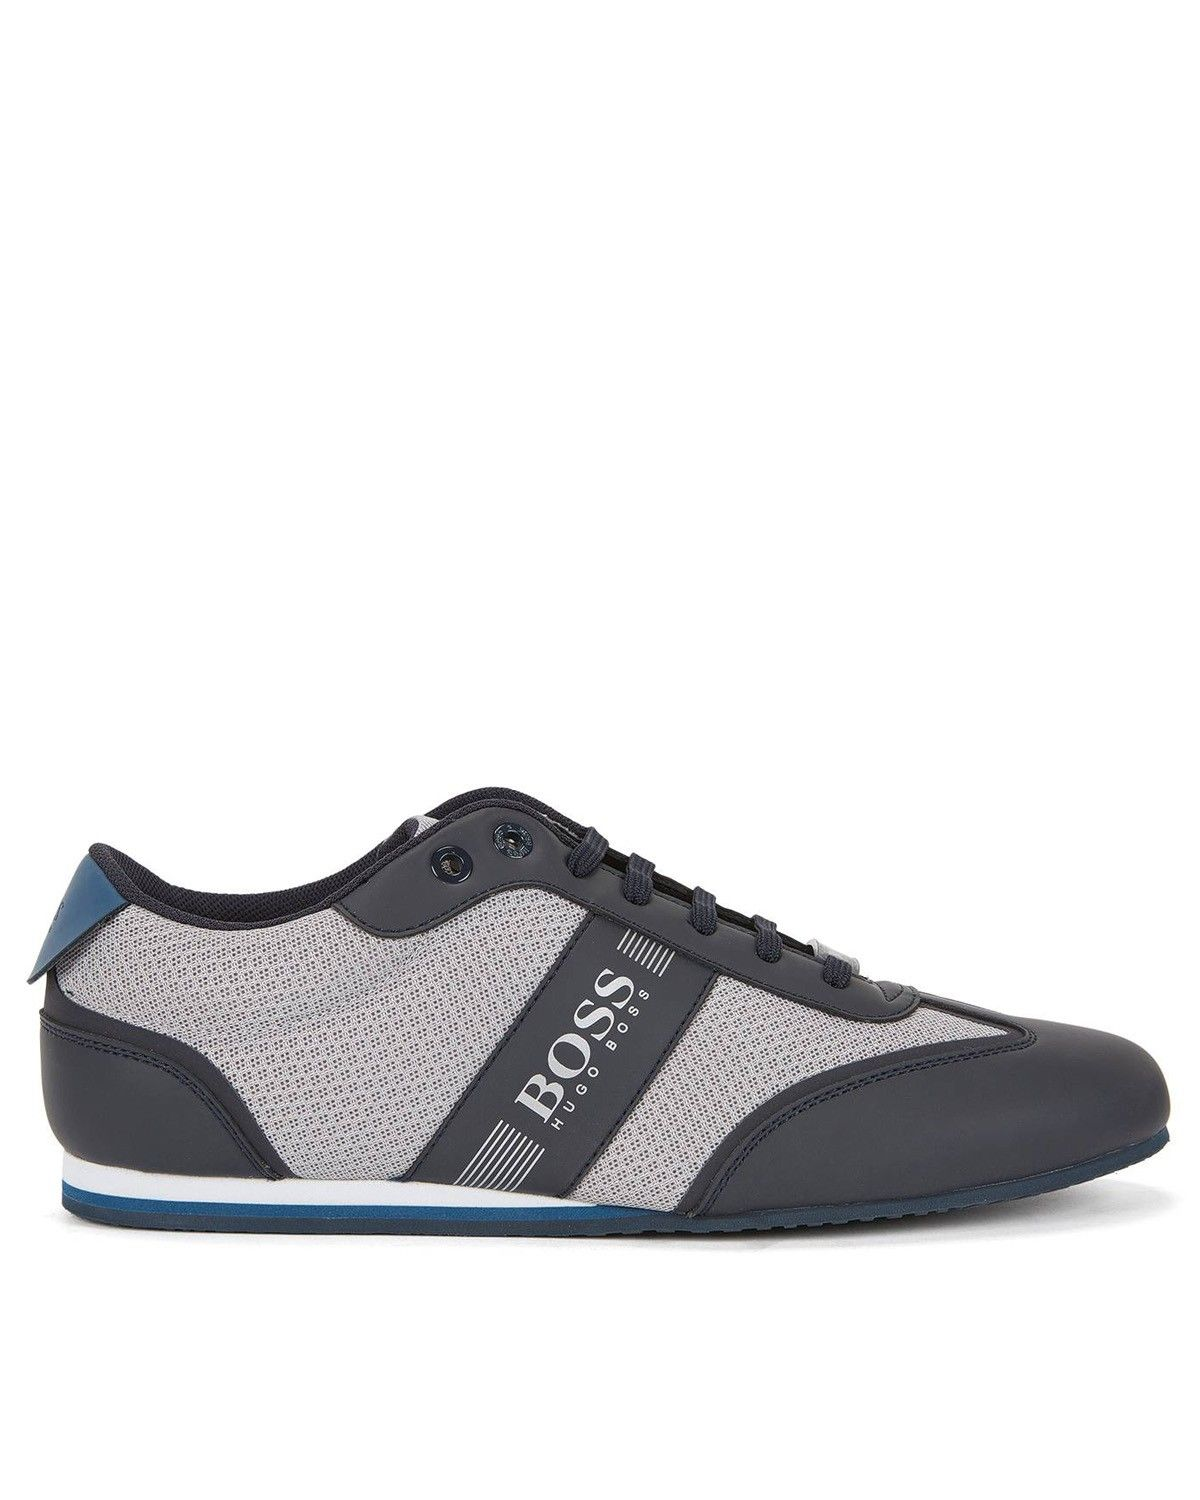 14c9814f Zapatos Hugo Boss Azul Marino - Lighter Lowp in 2019 | Обувь ...